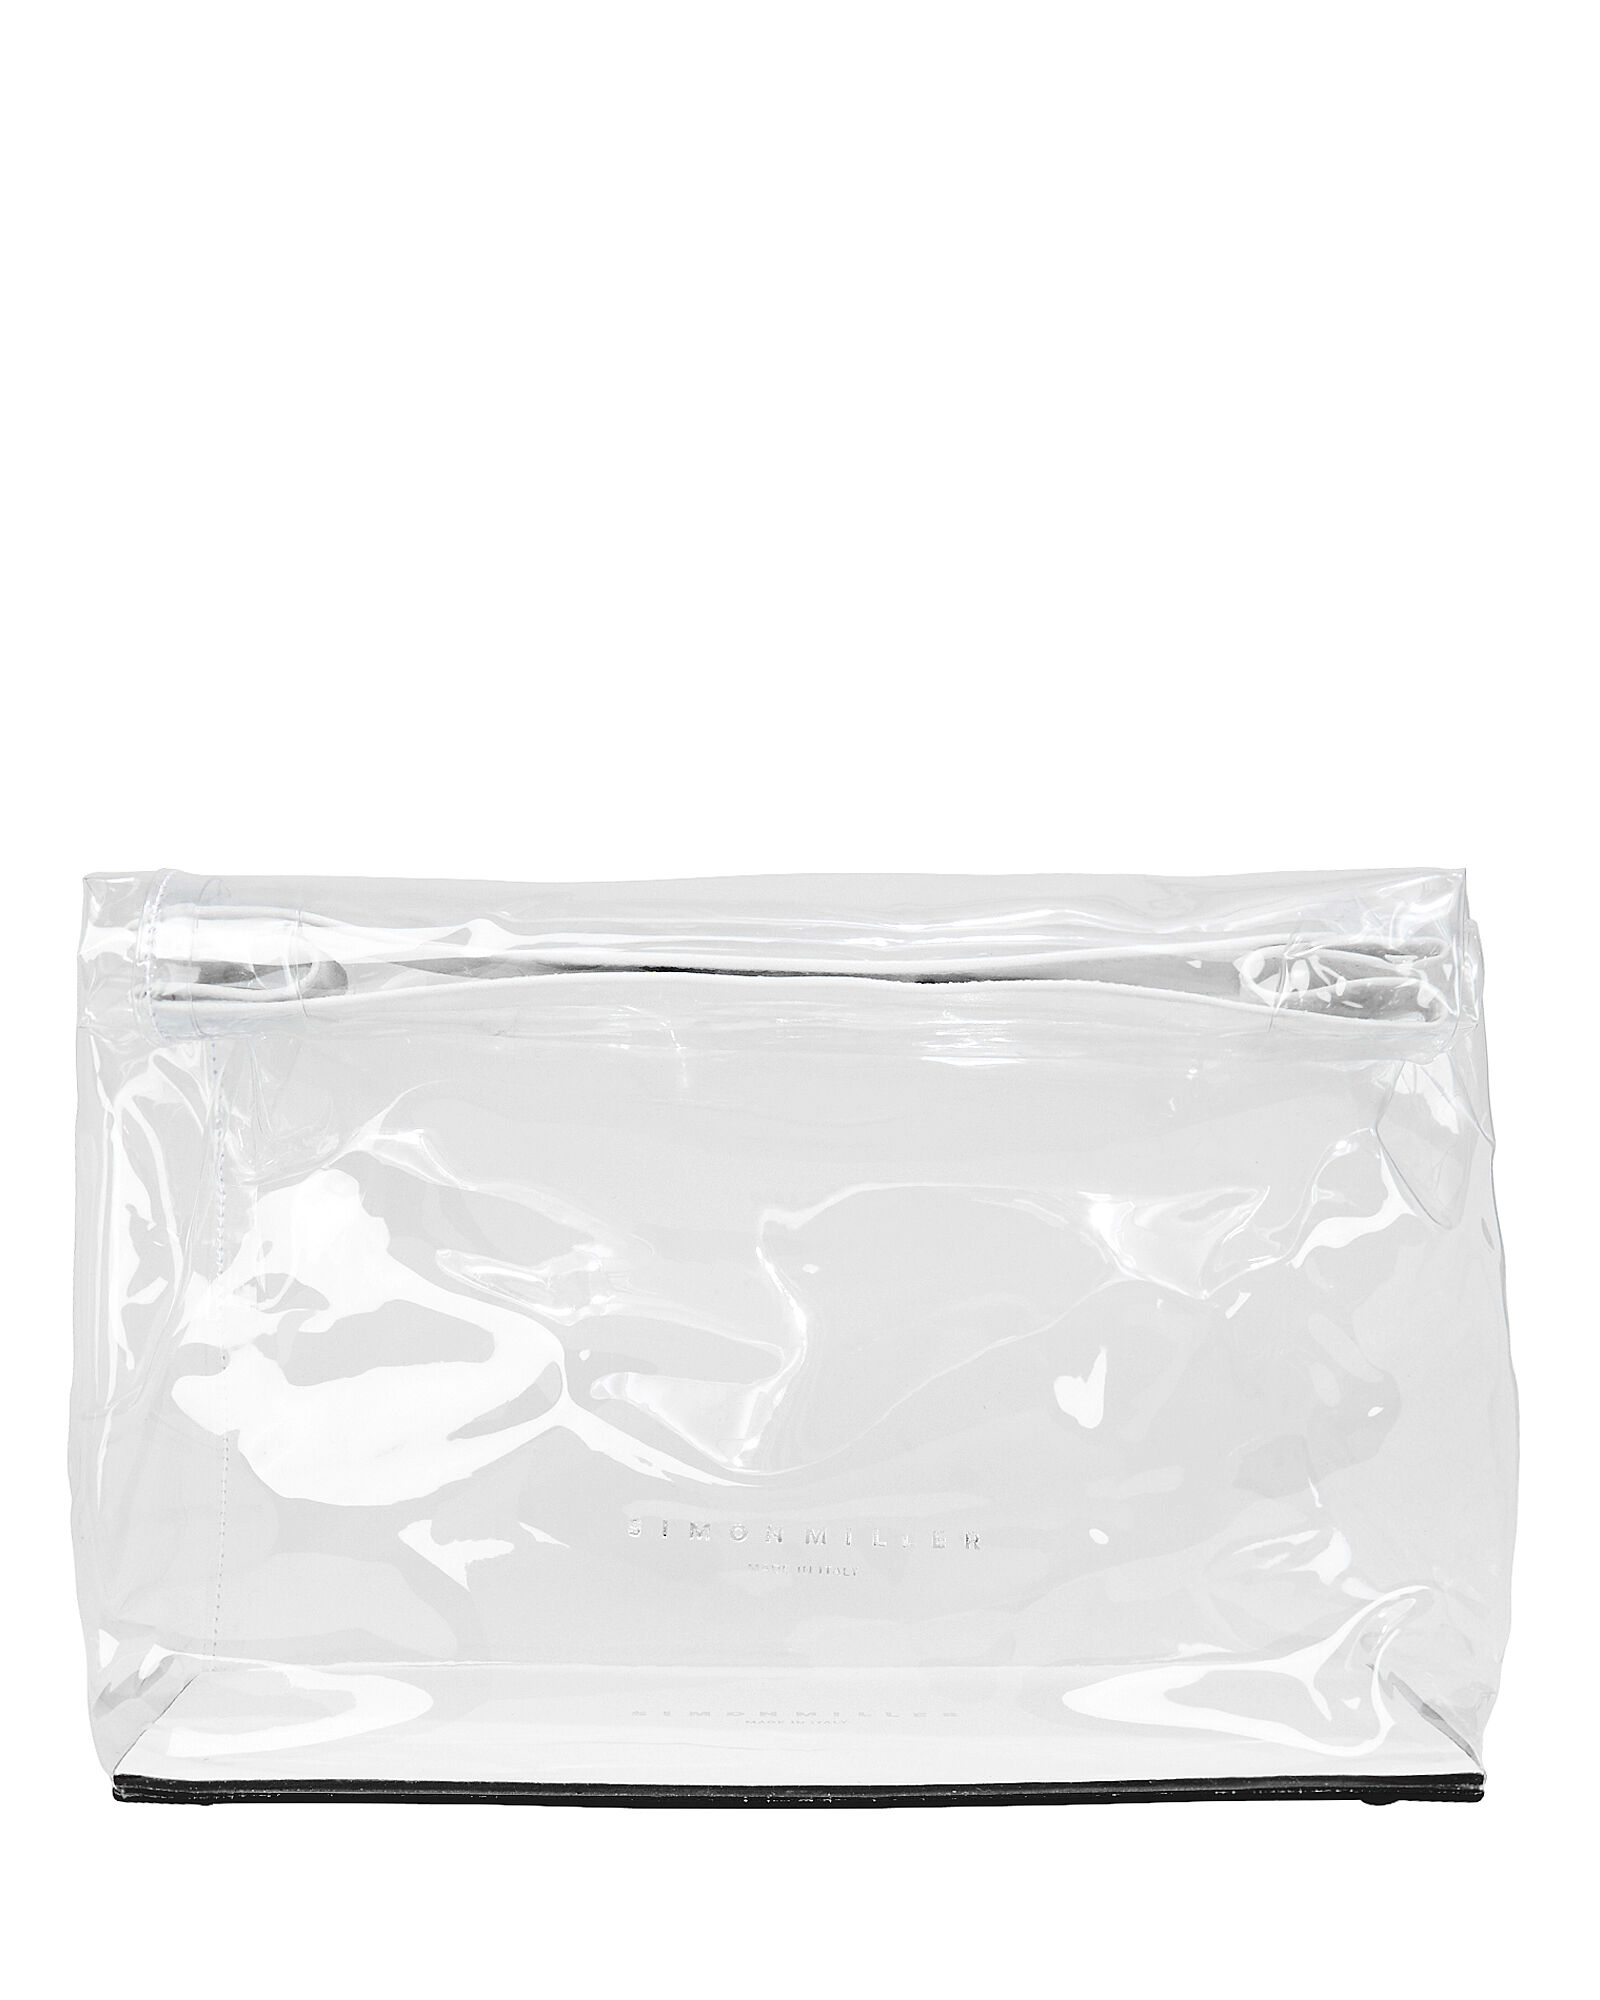 clear plastic lunchbag Leather Sofas clear plastic lunchbag clear